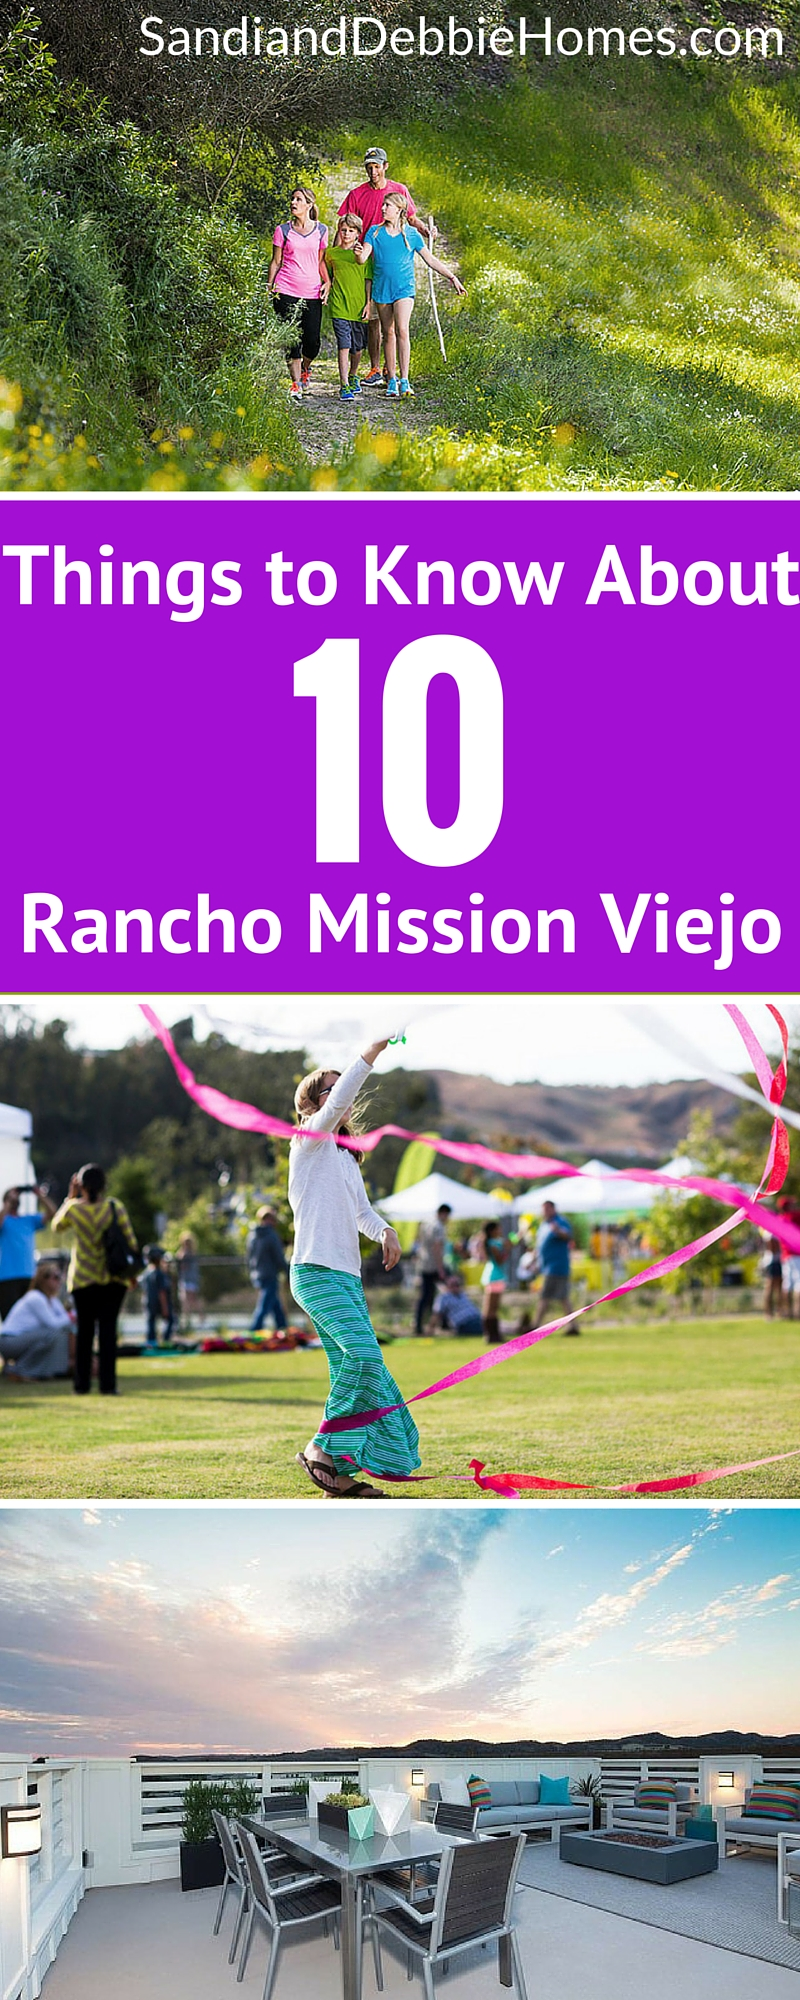 However, if you go to the southernmost part of Orange County, you'll find a very different style of life. Rancho Mission Viejo is where nature lovers go to live while being near to the city life that can be found in northern parts of the county